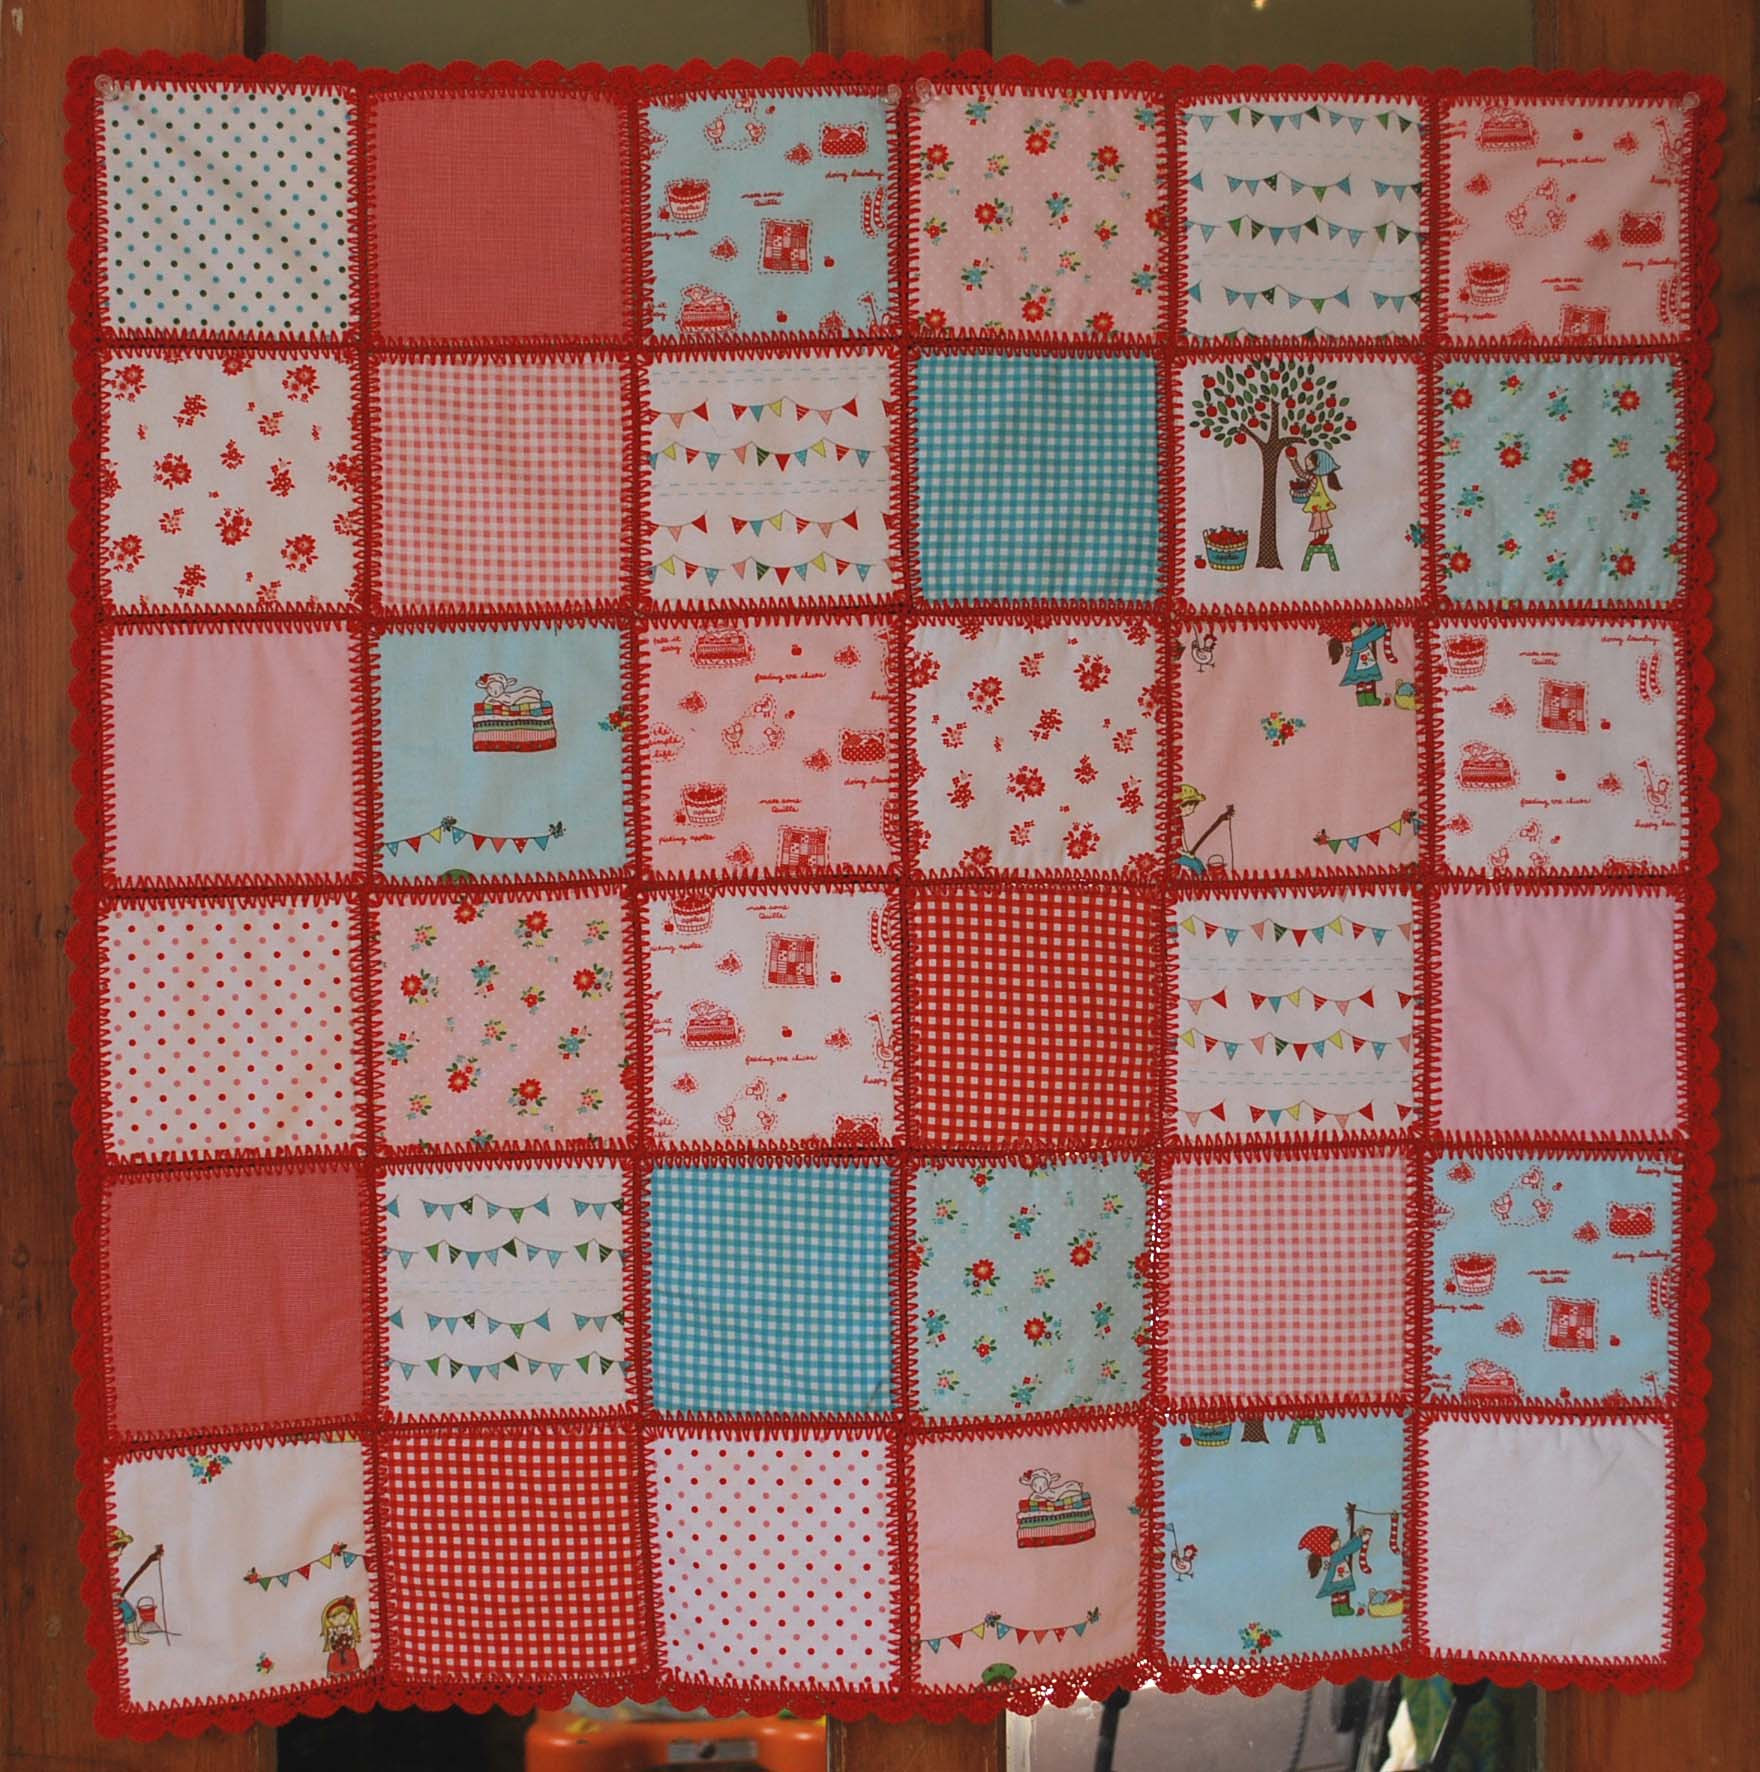 Crochet Quilts Luxury Crochet Baby Patchwork Quilt – the Piper S Girls Of Unique 45 Pics Crochet Quilts